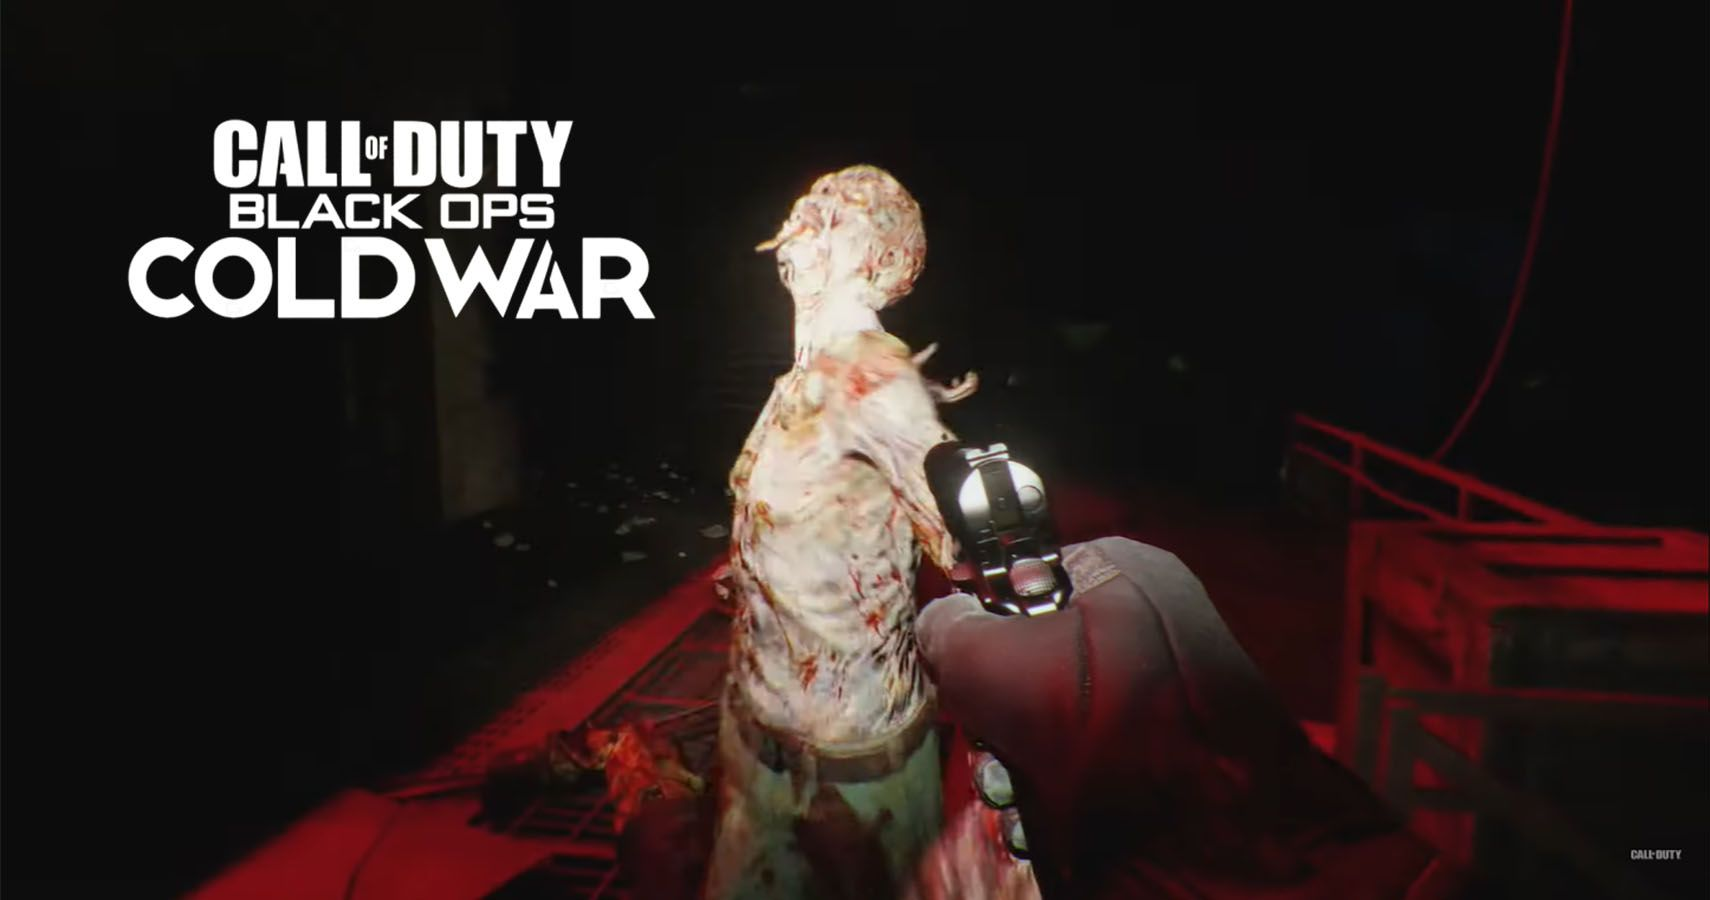 Call Of Duty Black Ops Cold War S Zombies Mode Gets A Gameplay Tease